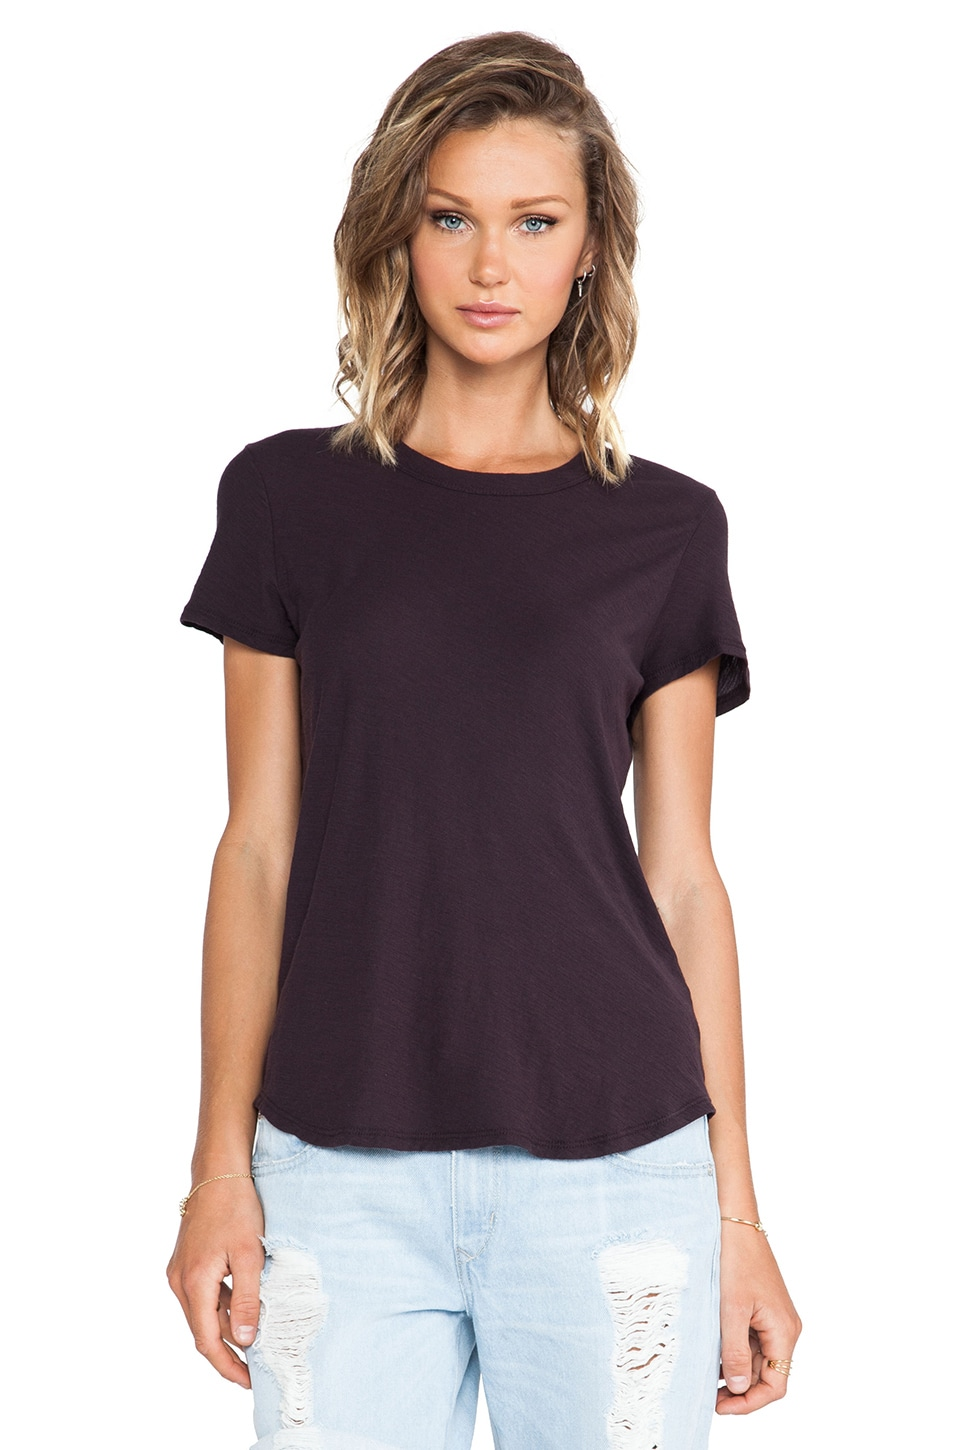 James Perse Sheer Slub Crew Neck Tee in Fig